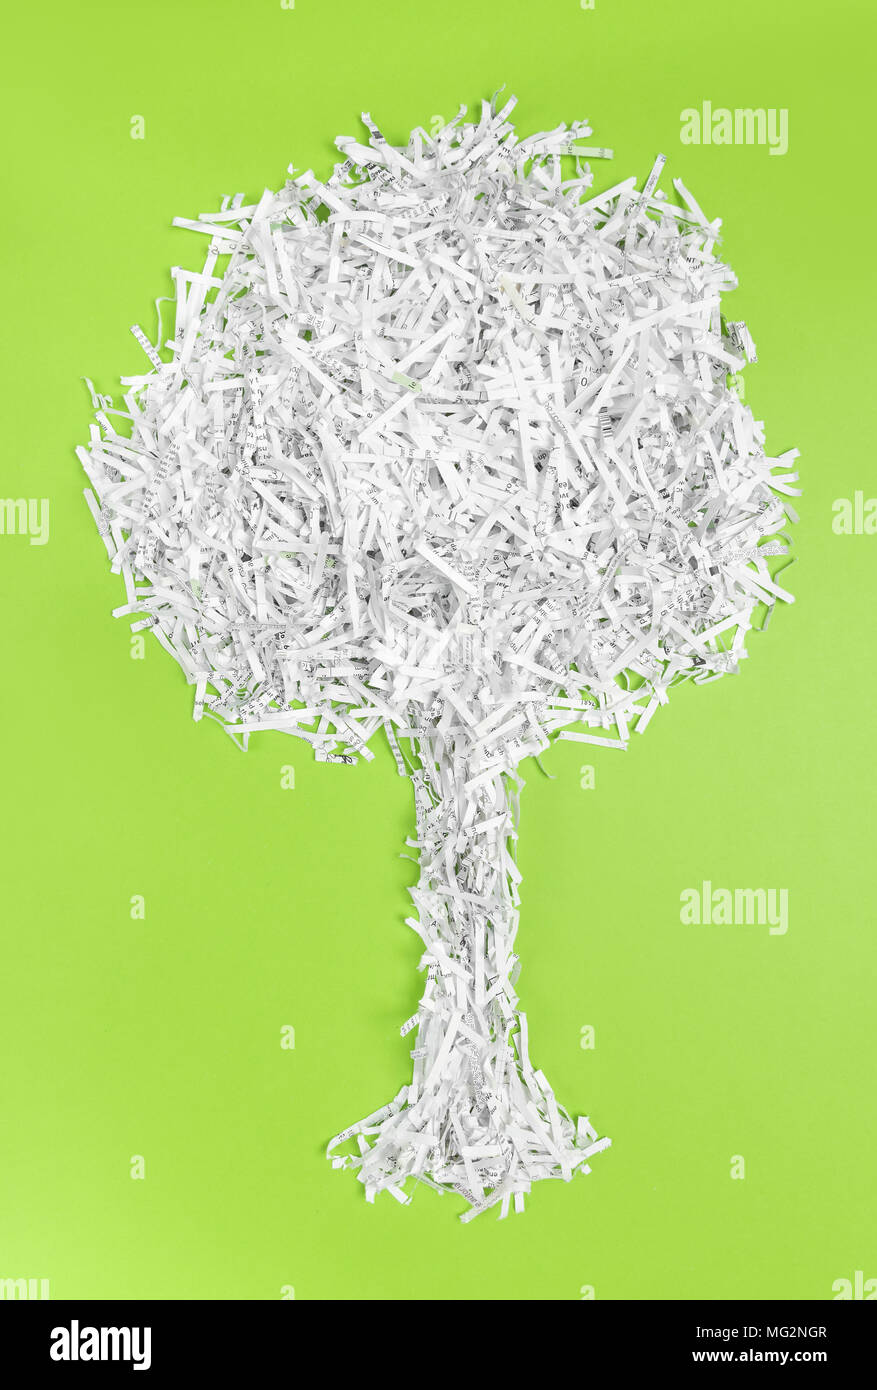 Tree made of shredded paper, on bright green background. Recycling and environment protection concept. - Stock Image